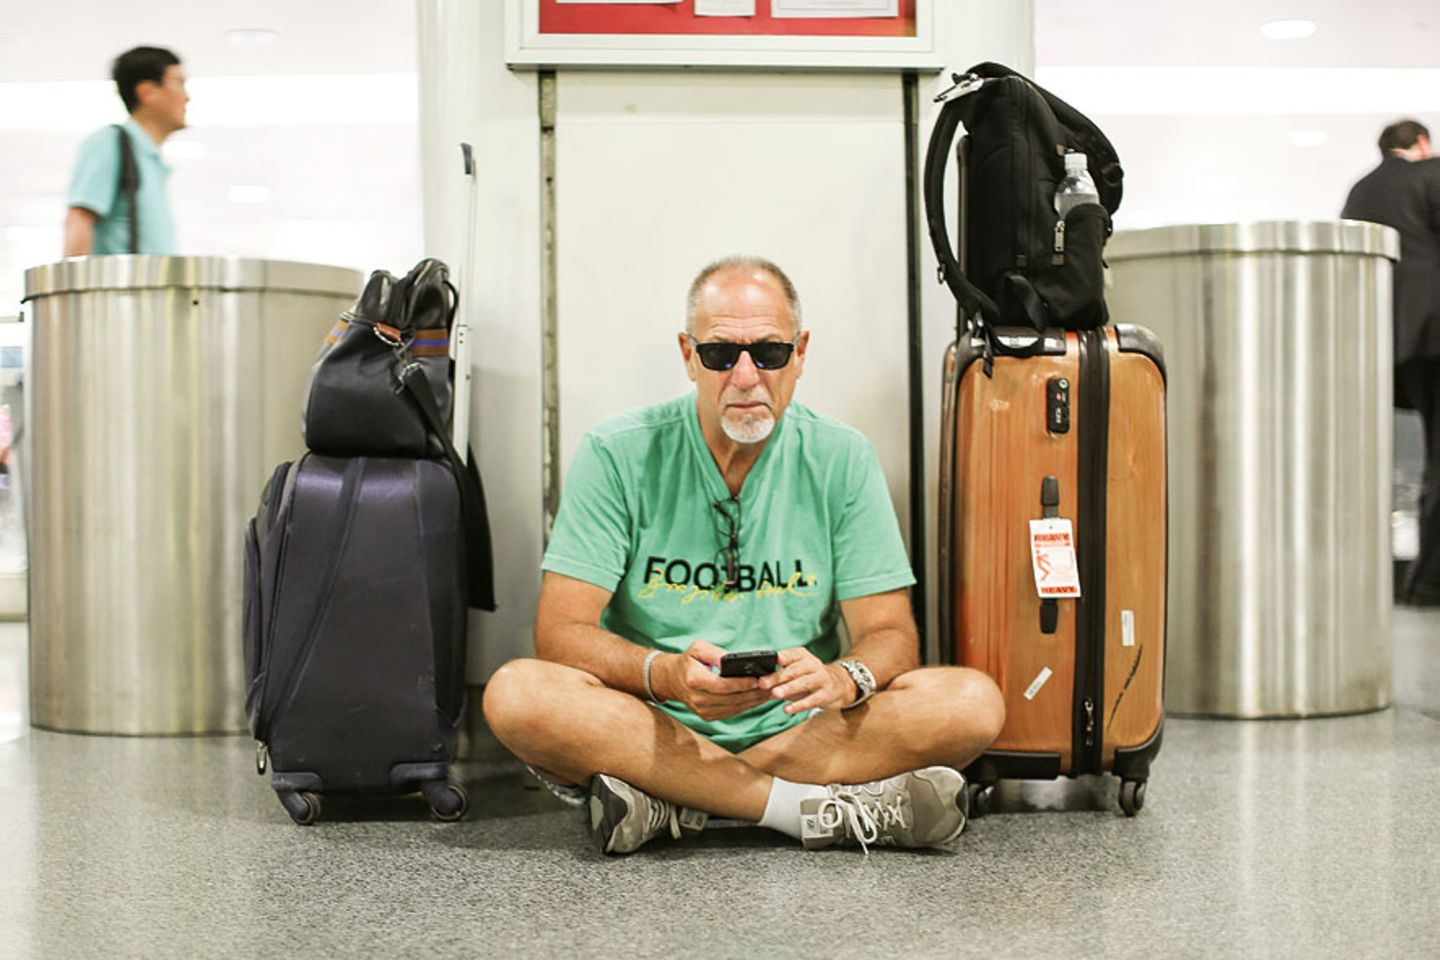 Humans of New York, 10. Story